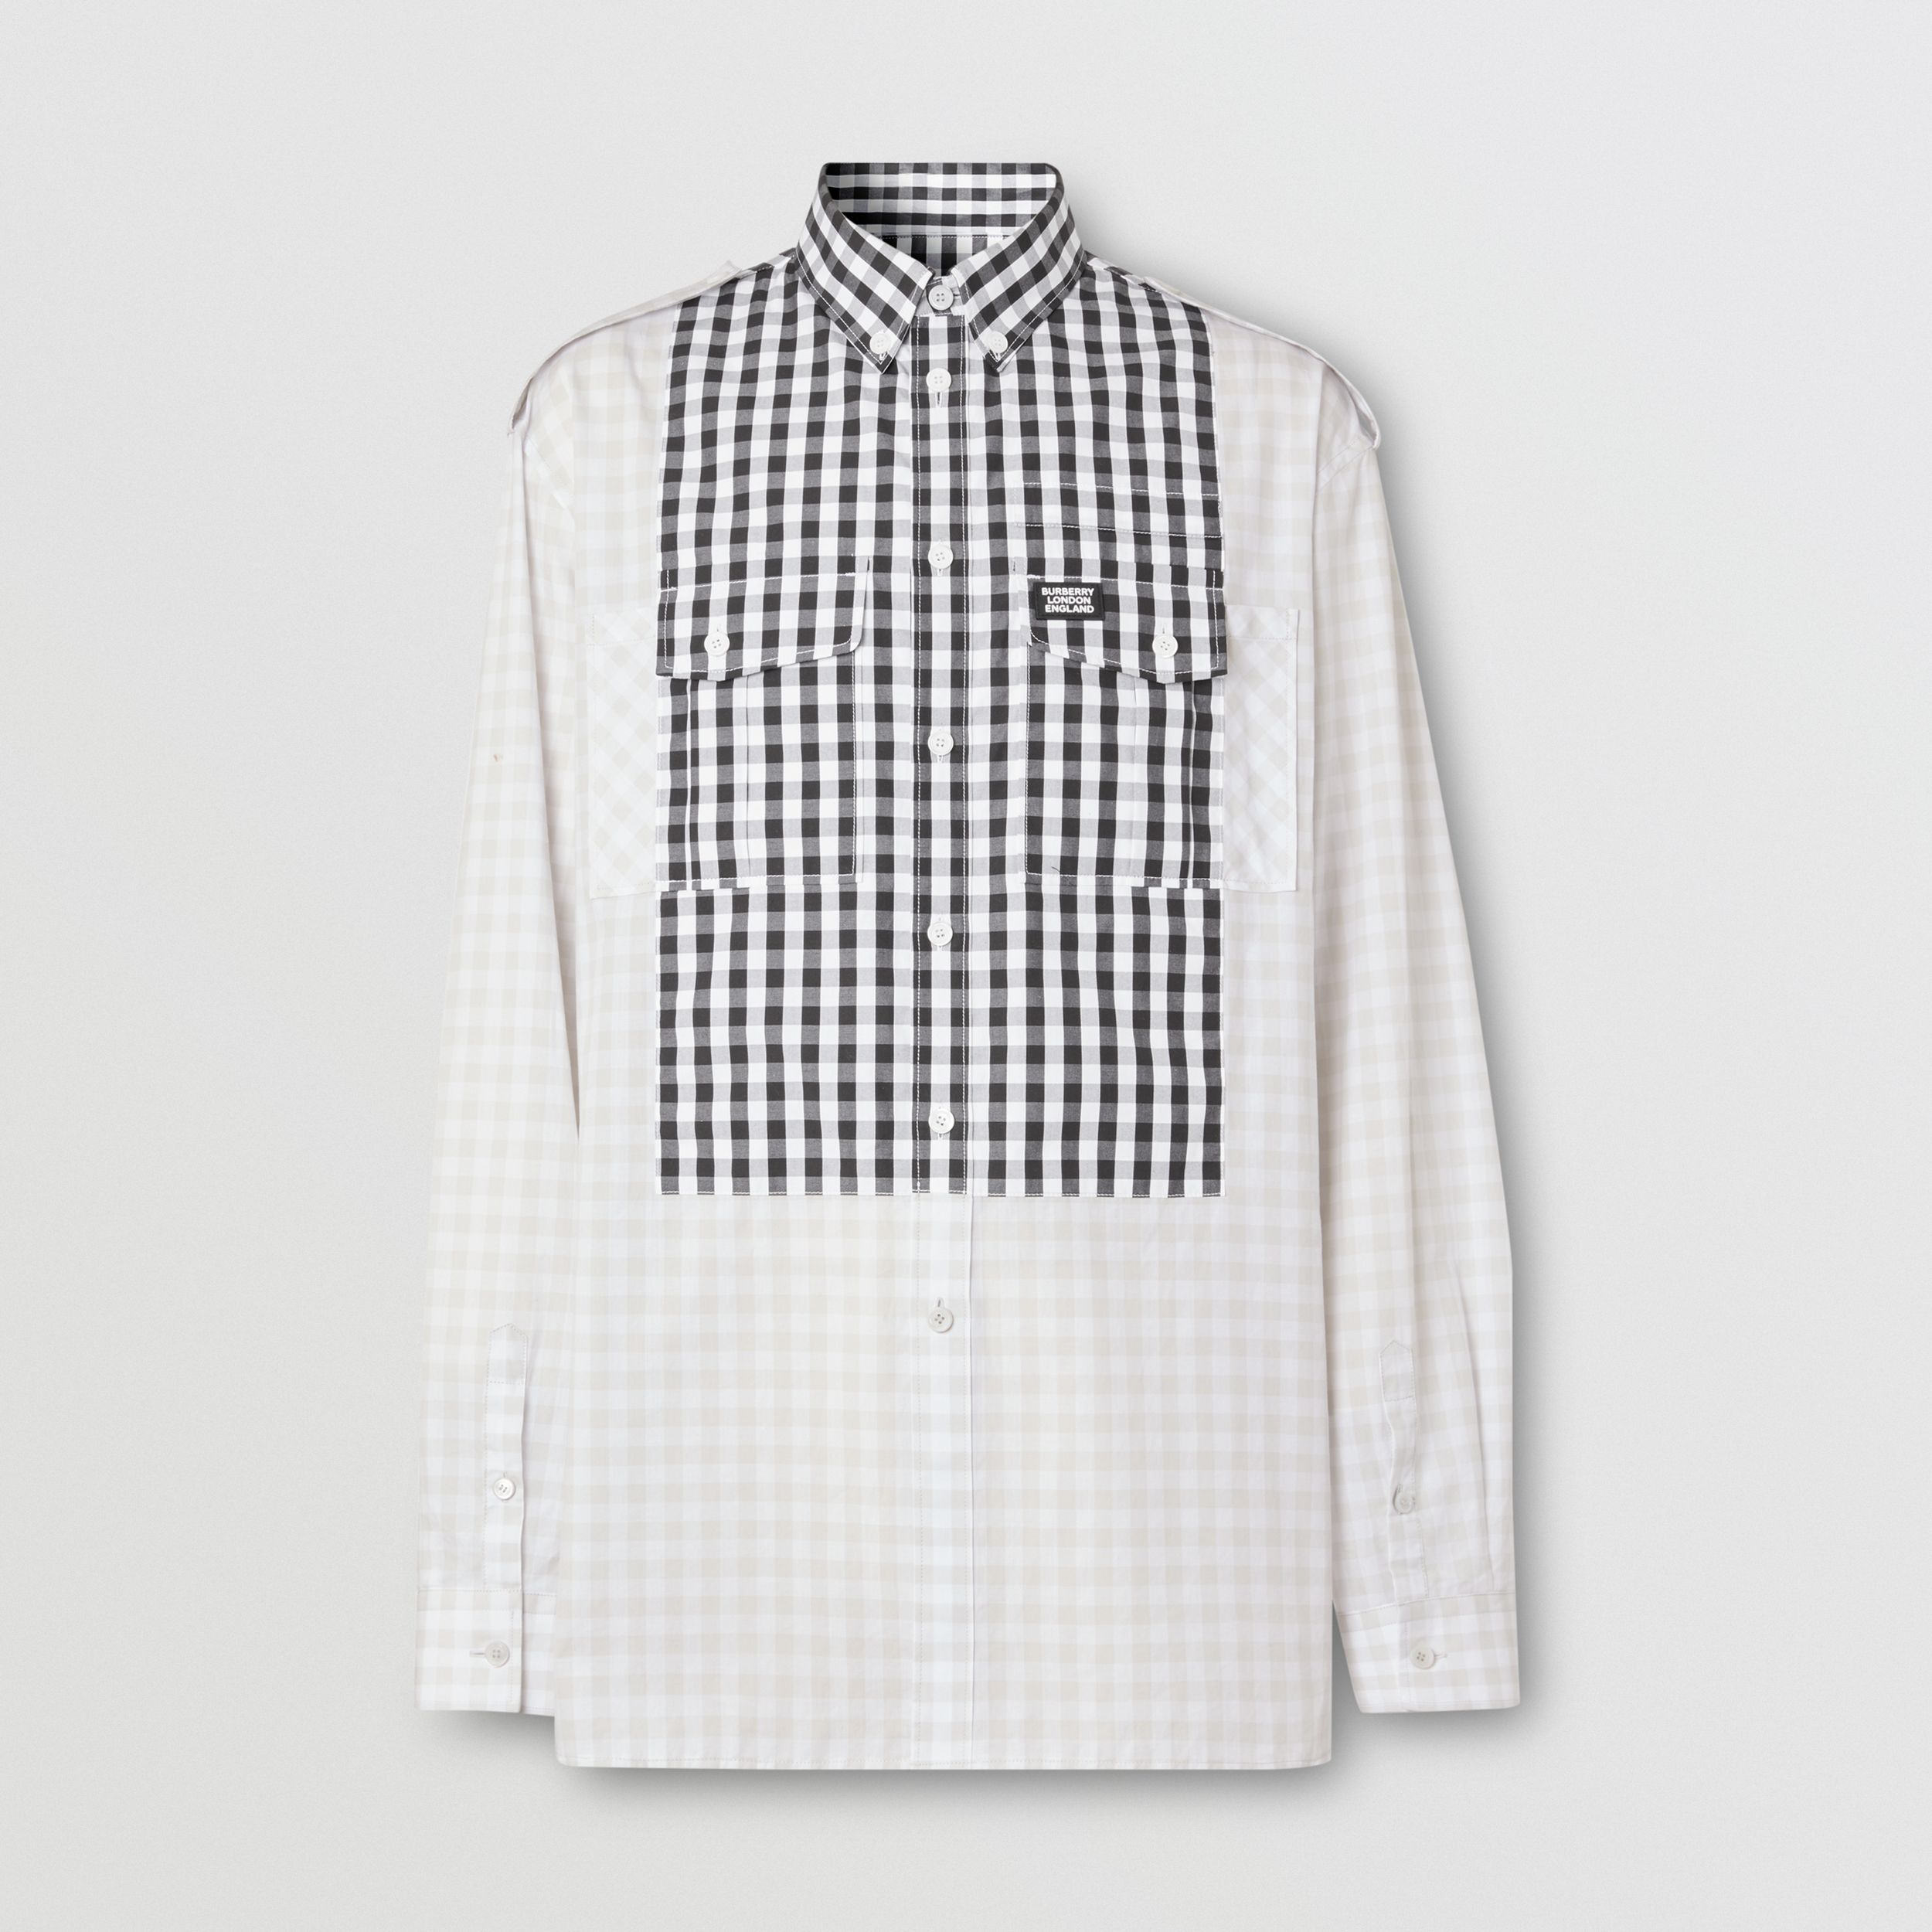 Contrast Bib Gingham Cotton Poplin Oversized Shirt in Light Pebble Grey - Men | Burberry United Kingdom - 4